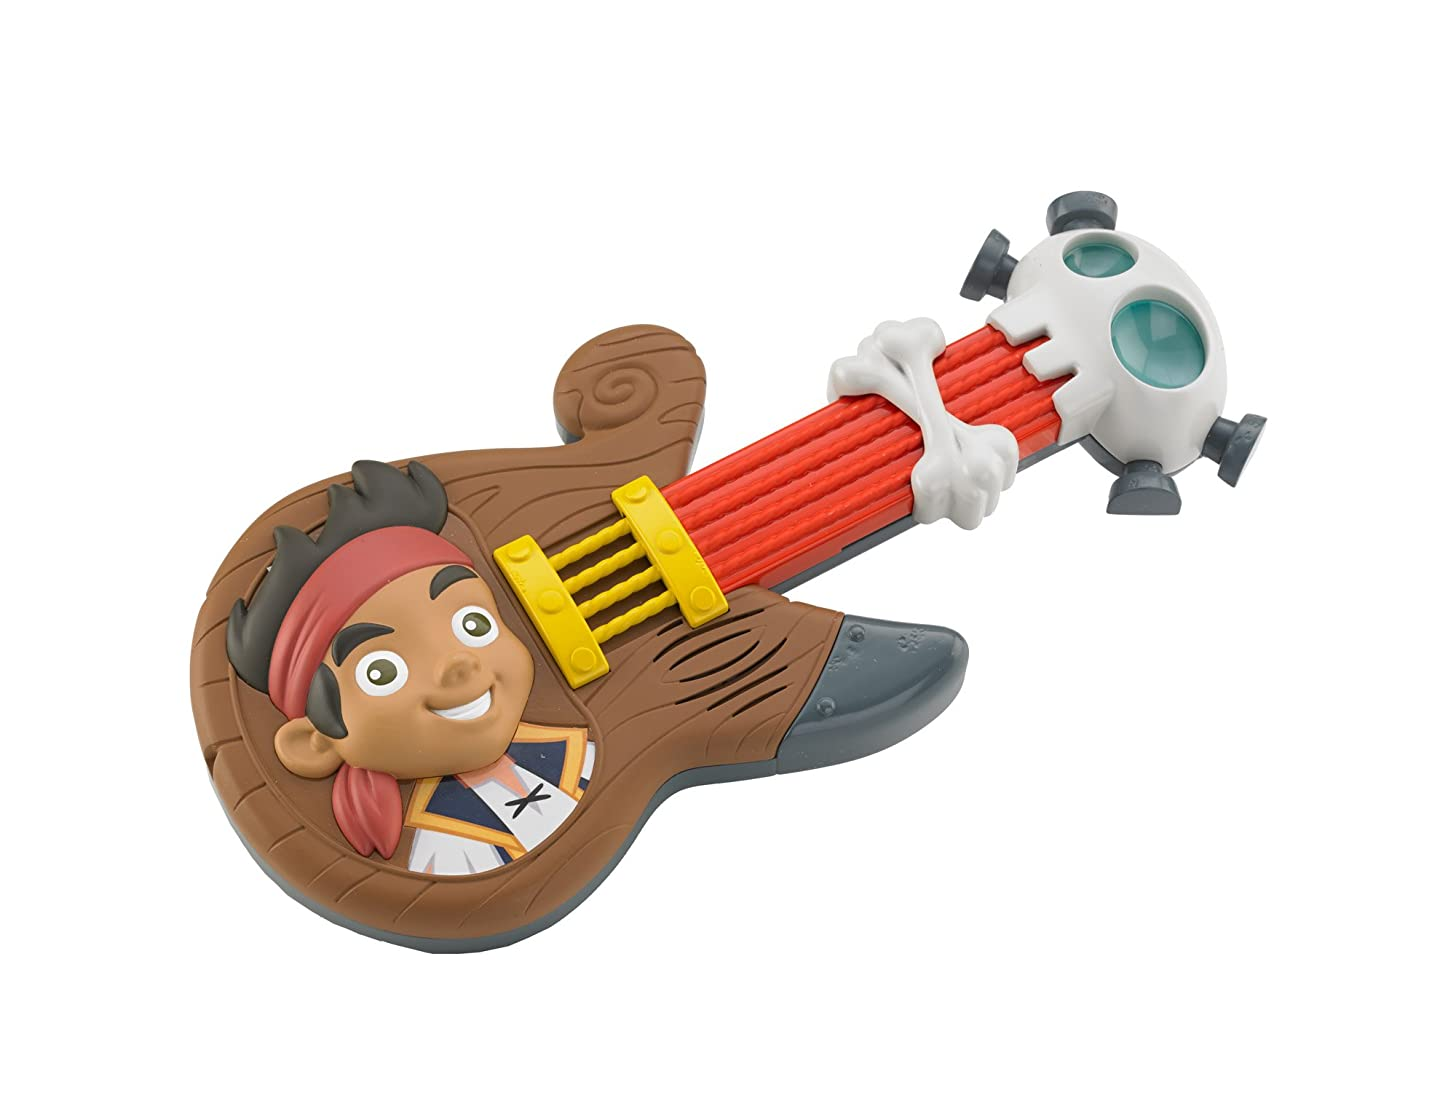 Fisher-Price Disney's Jake and The Never Land Pirates: Pirate Rock Guitar